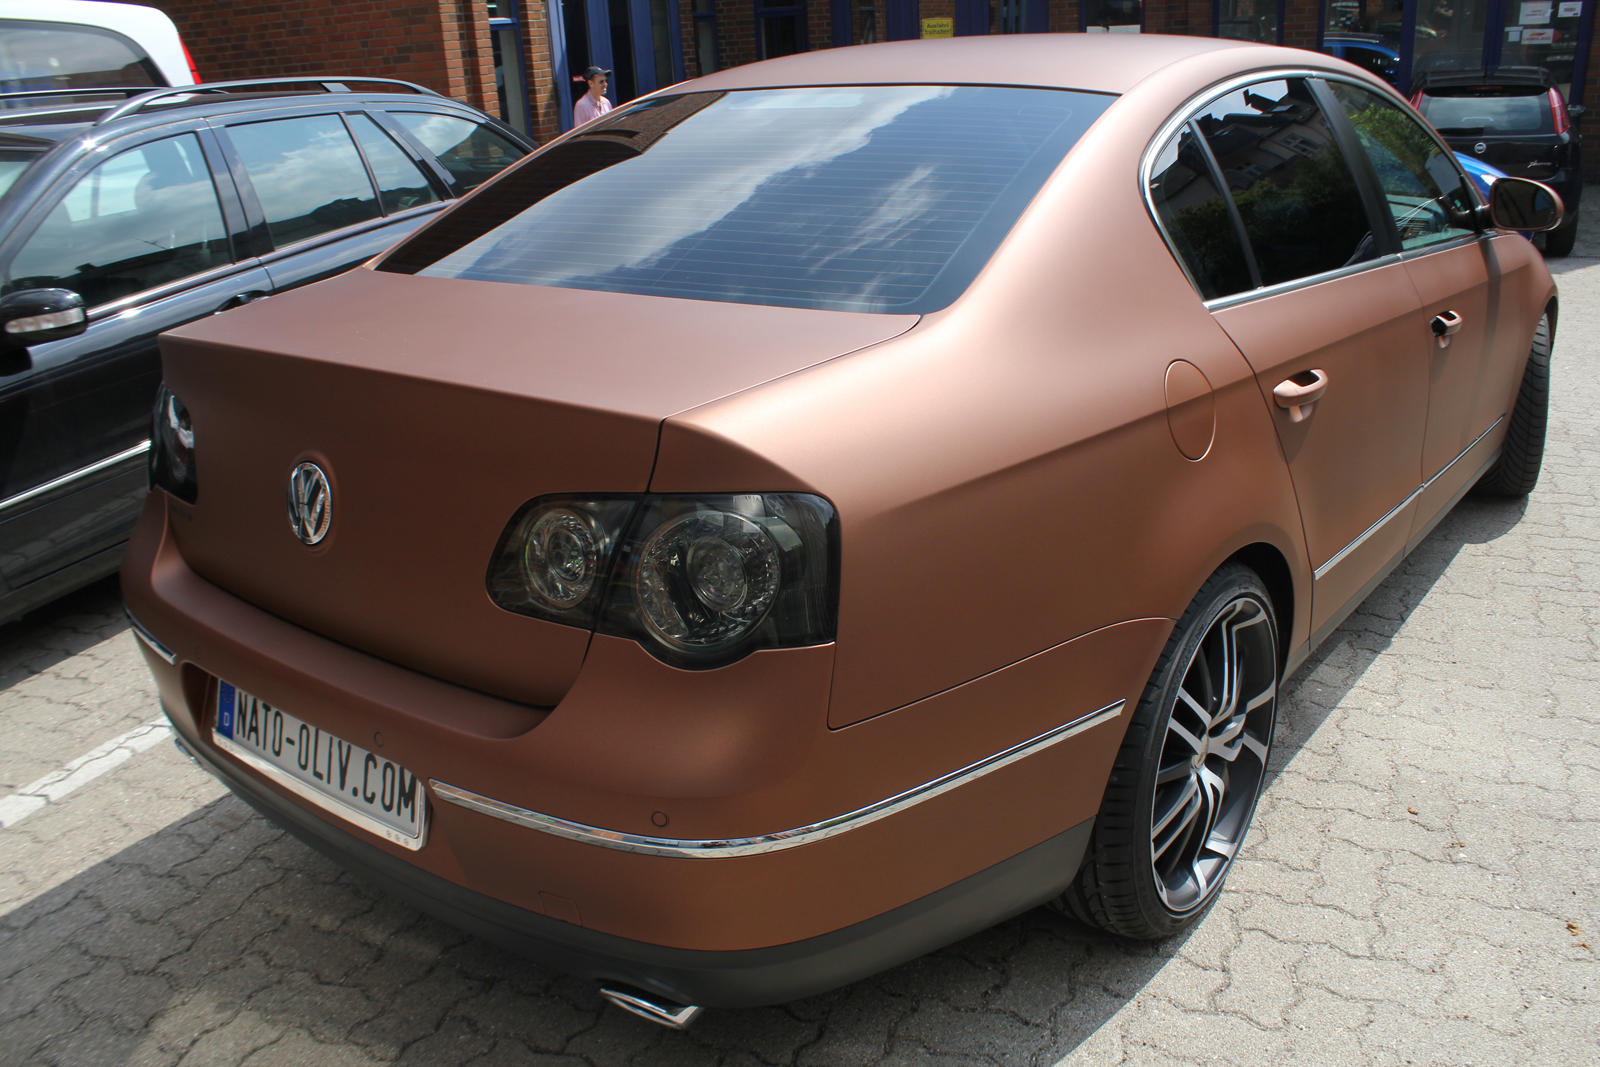 VW_Passat_Folierung_Bronze_matt_metallic_12